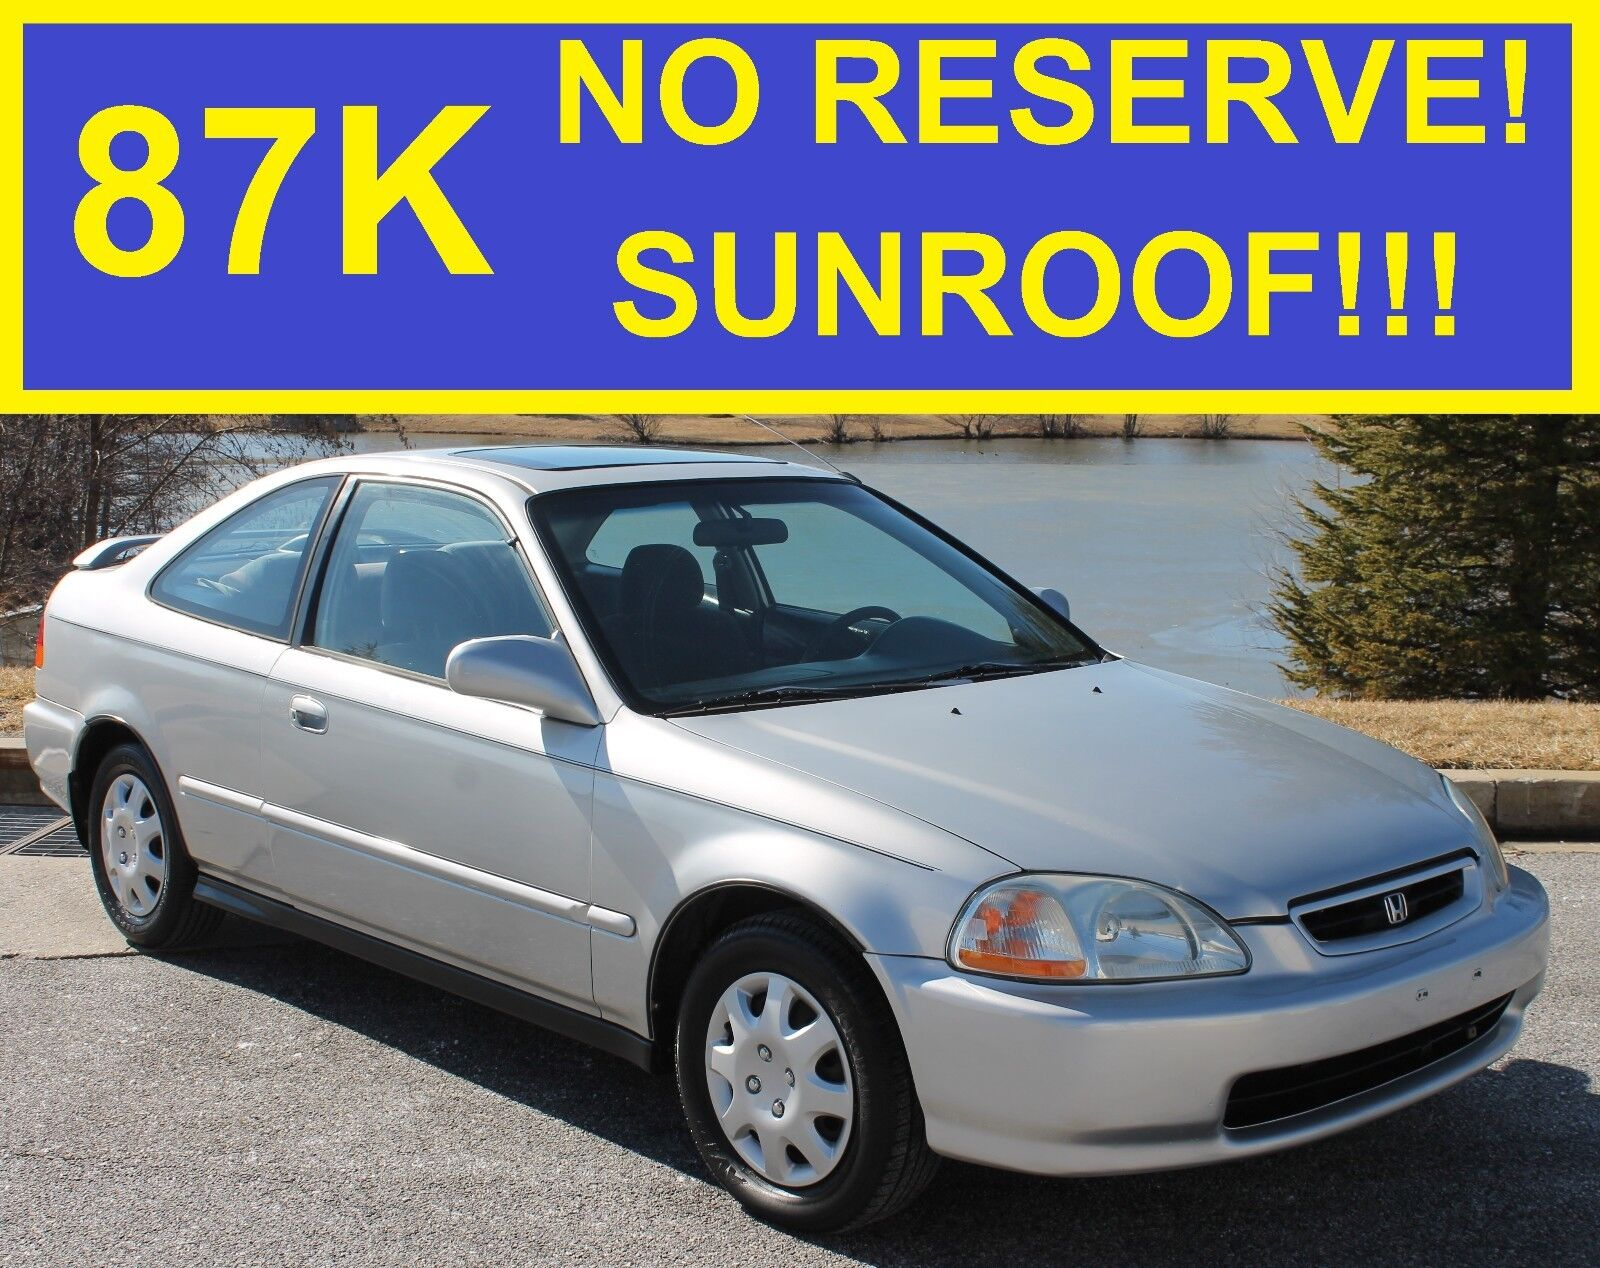 NO RESERVE 85K 1997 HONDA CIVIC EX SUNROOF MUST SEE!!! ACCORD COROLLA TOYOTA LX